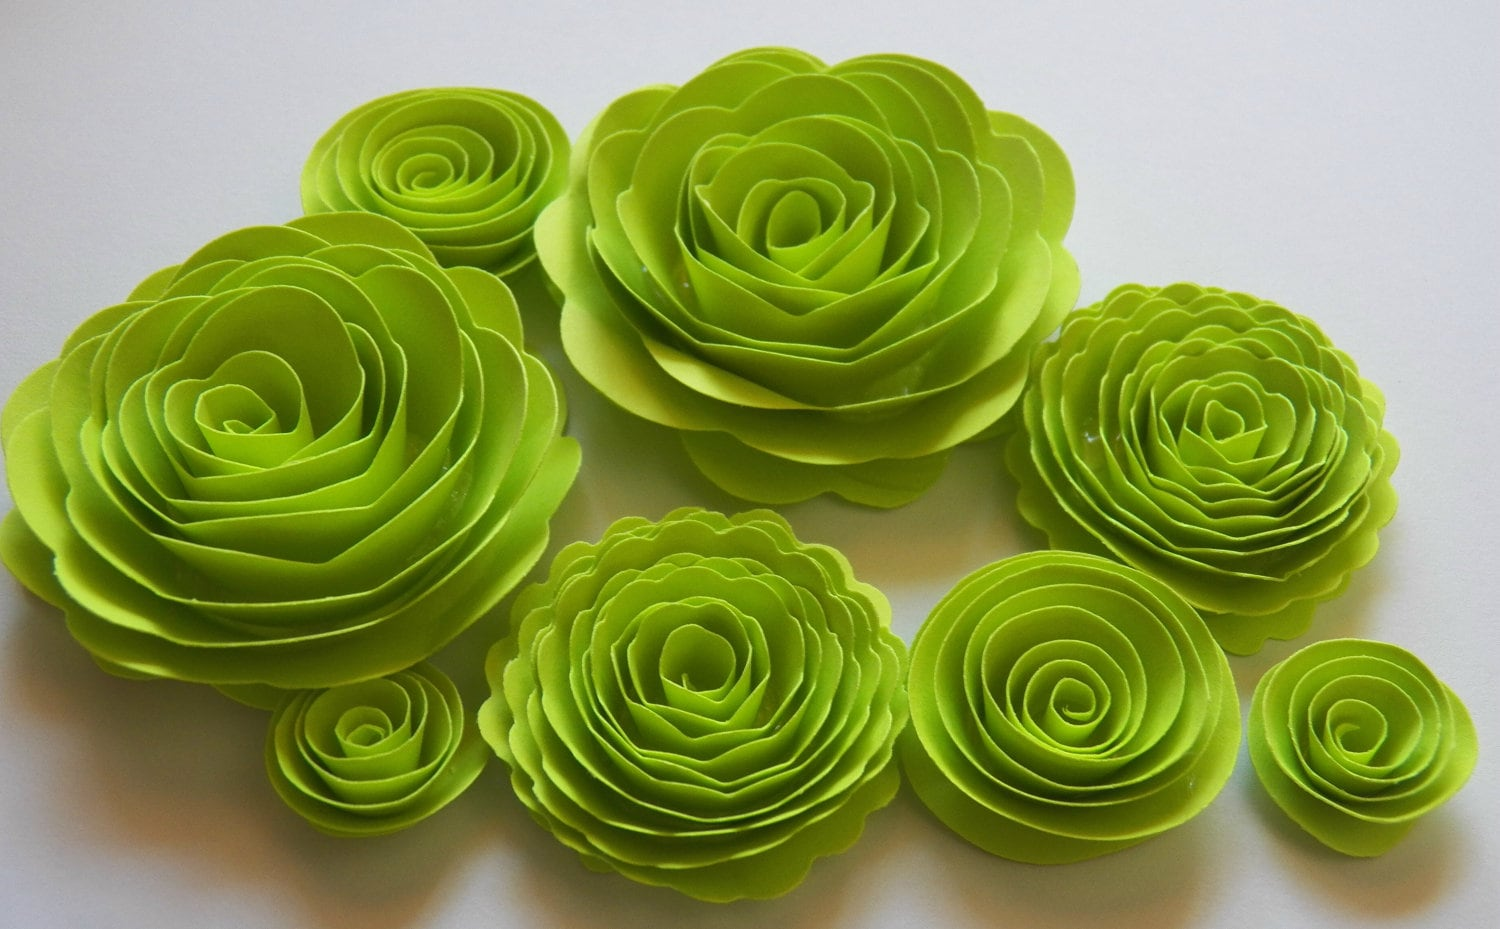 Lime Green Handmade Rose Spiral Paper Flowers Use On Halloween